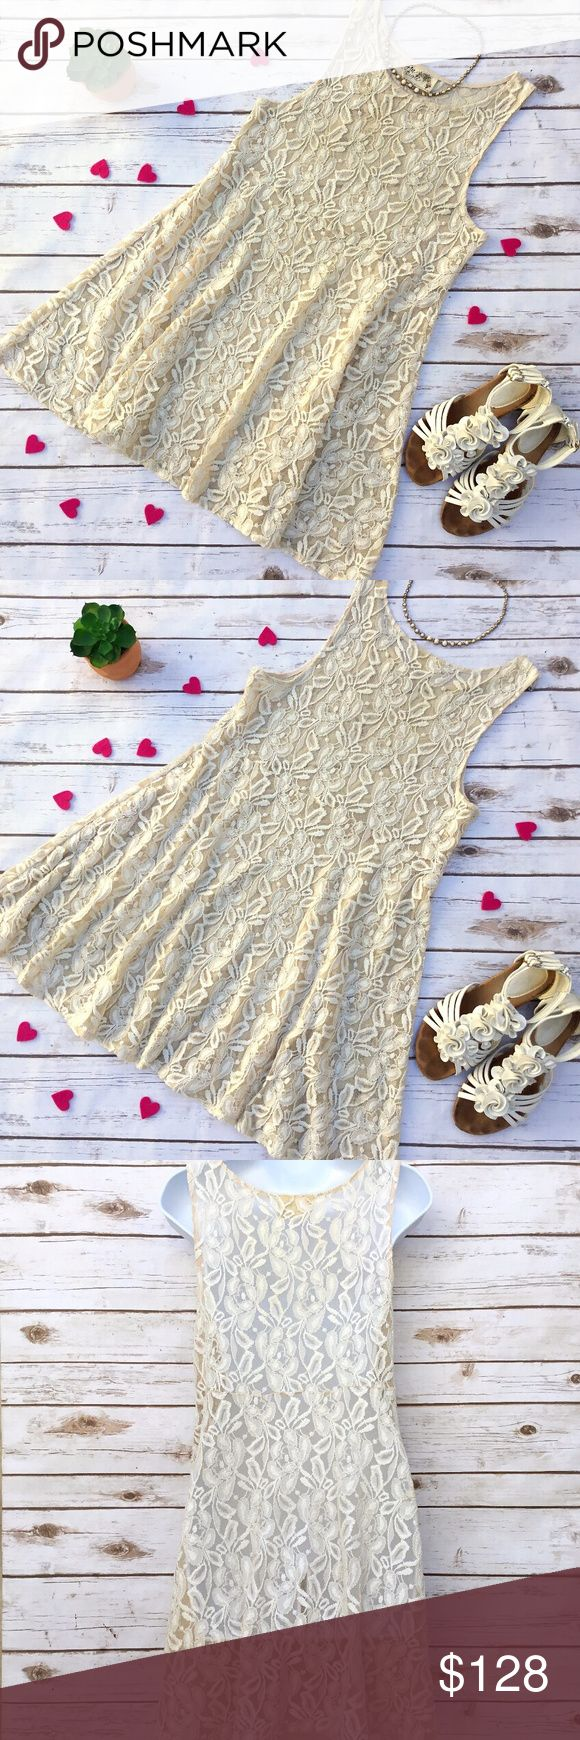 Free People Miles of Lace Nude Festival Dress Romantic and very feminine dress. This one does not include a slip. 73% cotton and 27% nylon. Size M, measures about 17.5 inches across from armpit to armpit and 33 inches in length Free People Dresses